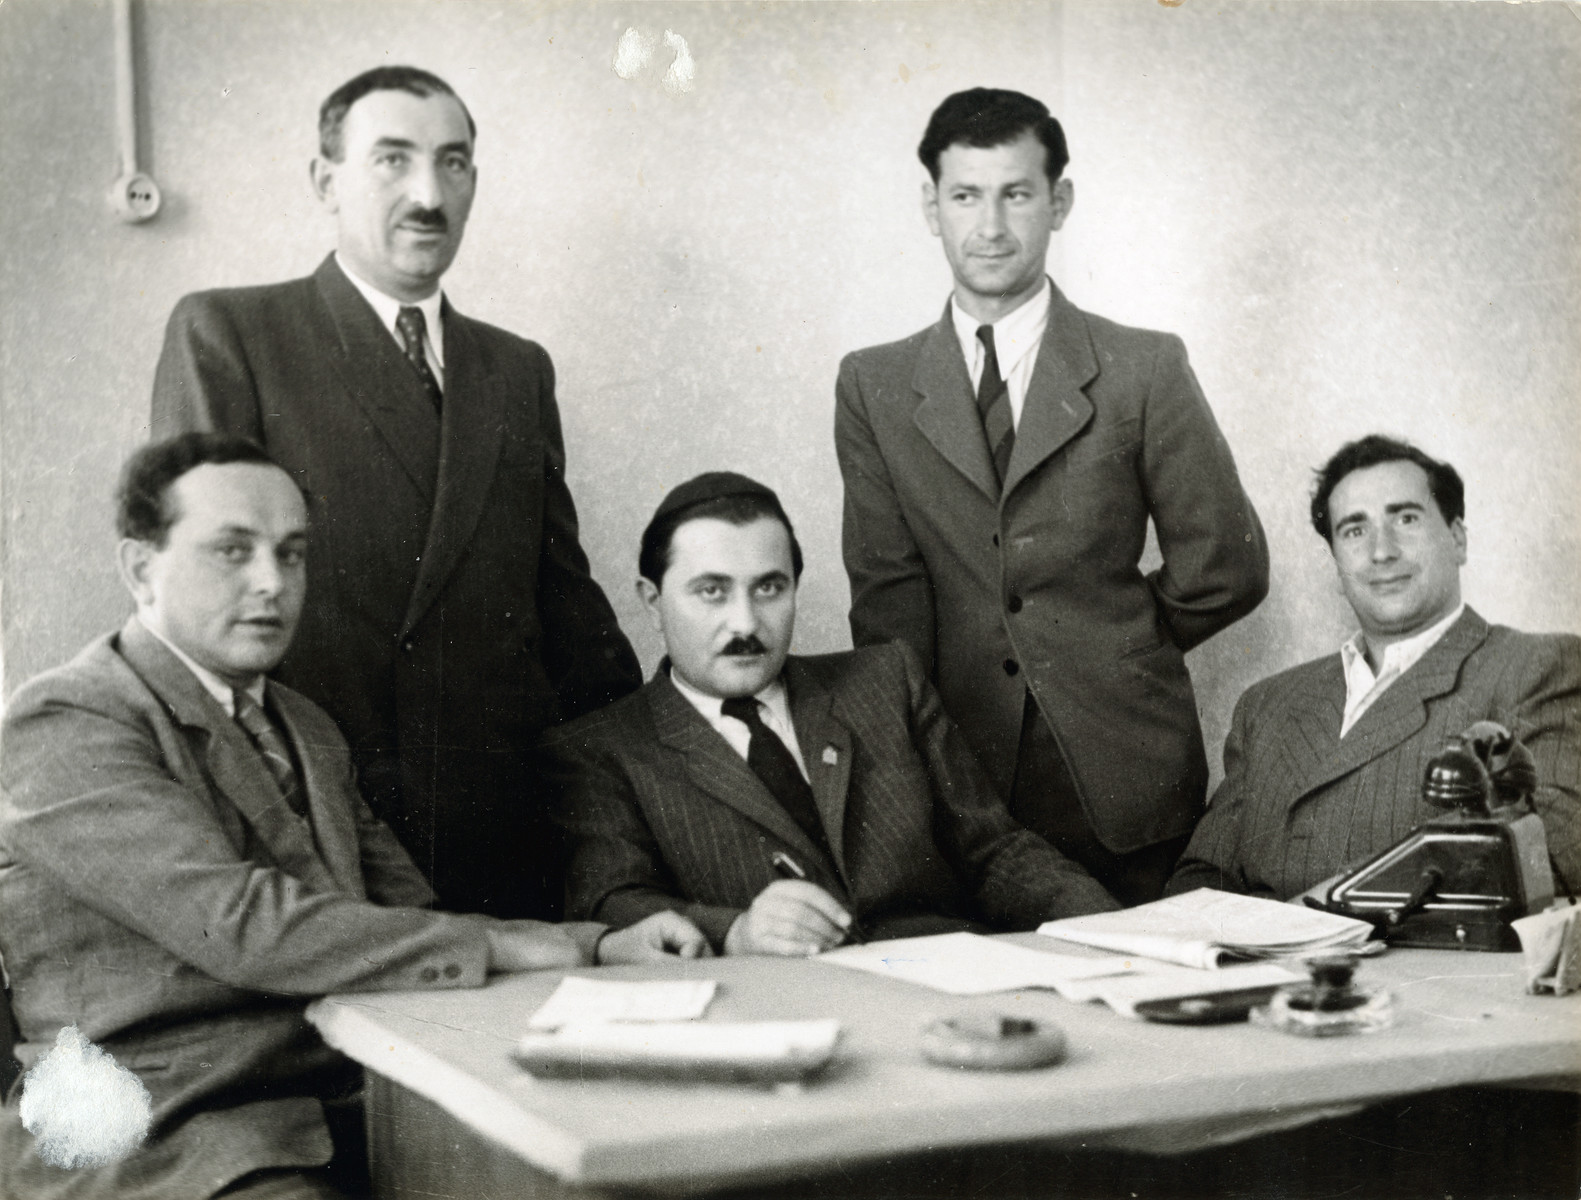 Group portrait of the leadership of the Pocking displaced persons camp.  Pictured seated left to right are Max Shmerler, Rabbi Yehuda Meisels, Yitzchak Golombeck.  R. Weinstein is standing right.